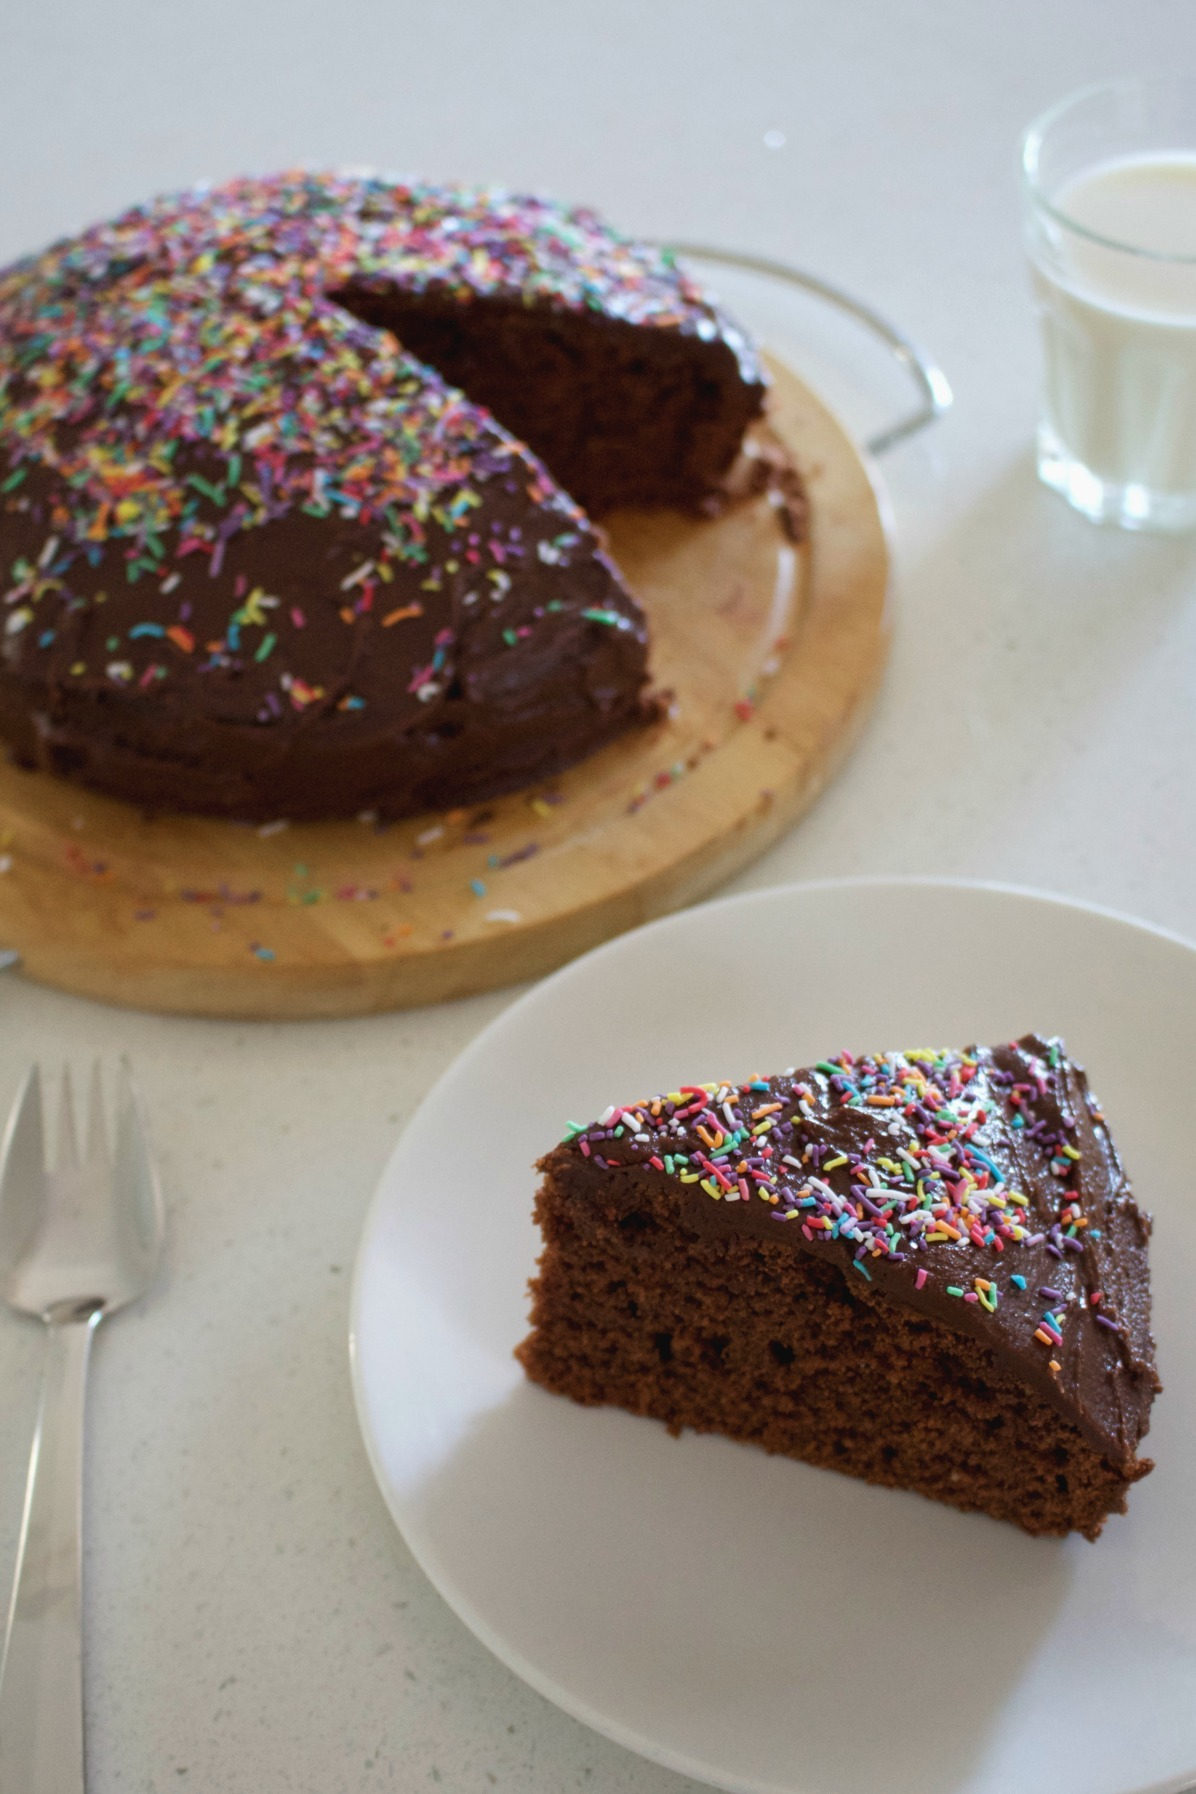 Egg-free chocolate cake with easy fudge icing – no eggs cake recipe